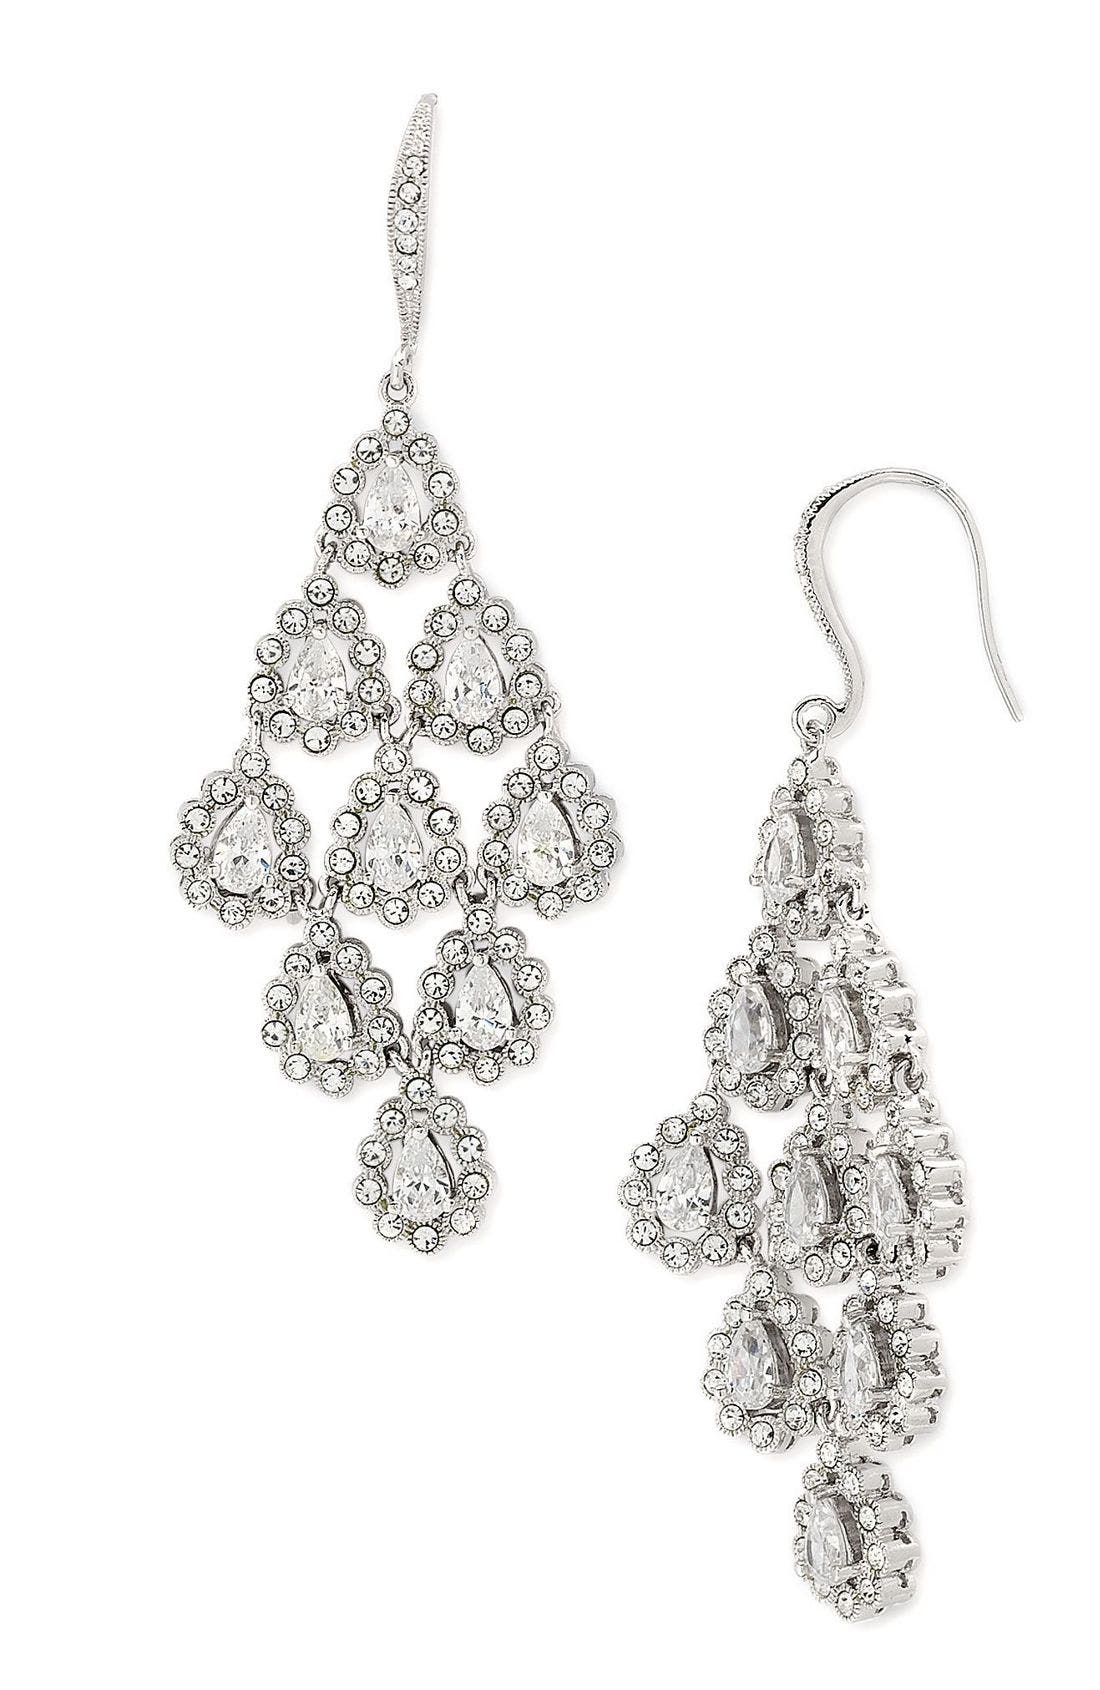 Main Image - Nadri Tiered Chandelier Earrings